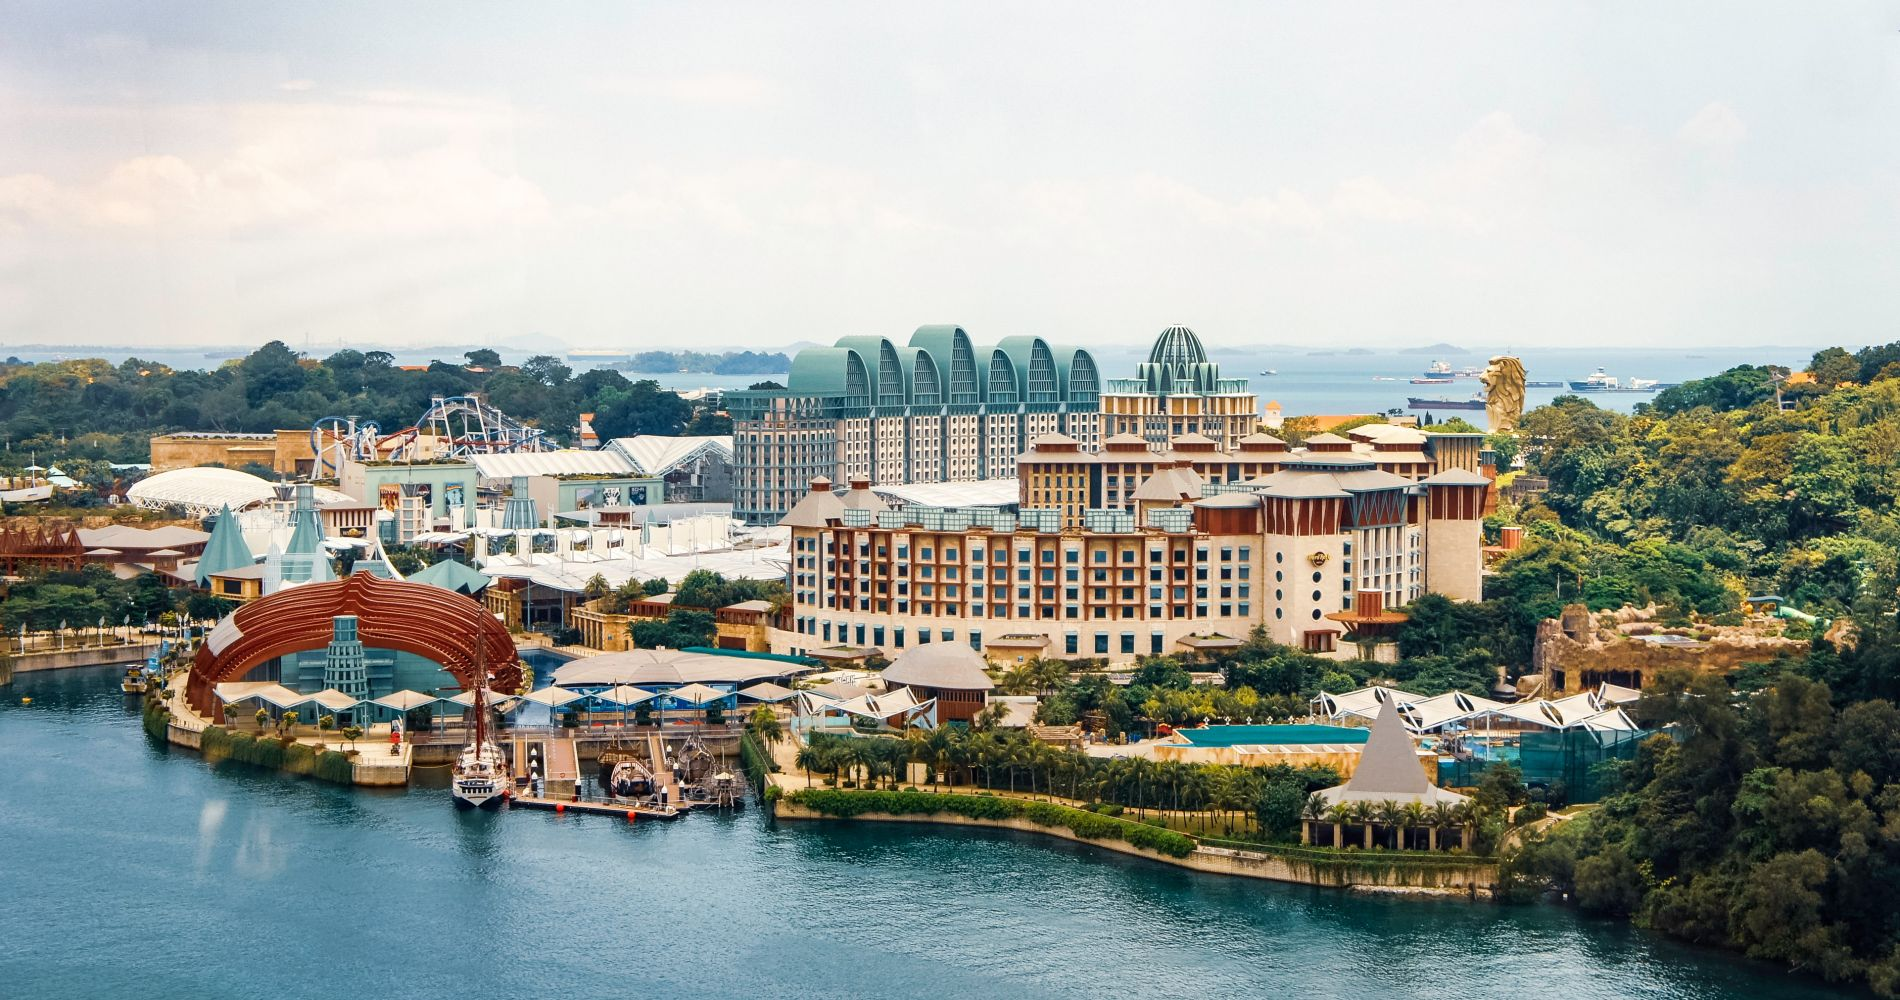 AJ Hackett Sentosa Giant Swing and Skybridge and other Singapore attractions for Two